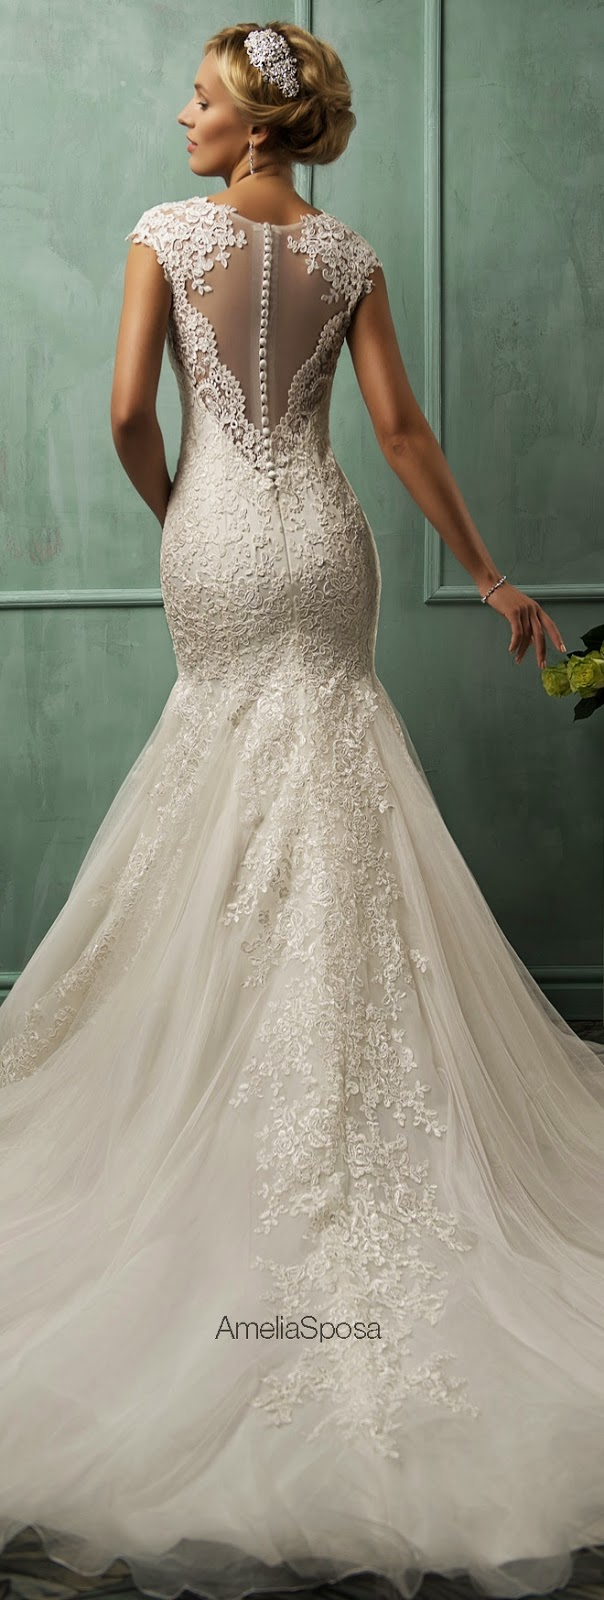 amelia-sposa-wedding-dresses-8-11212014nz